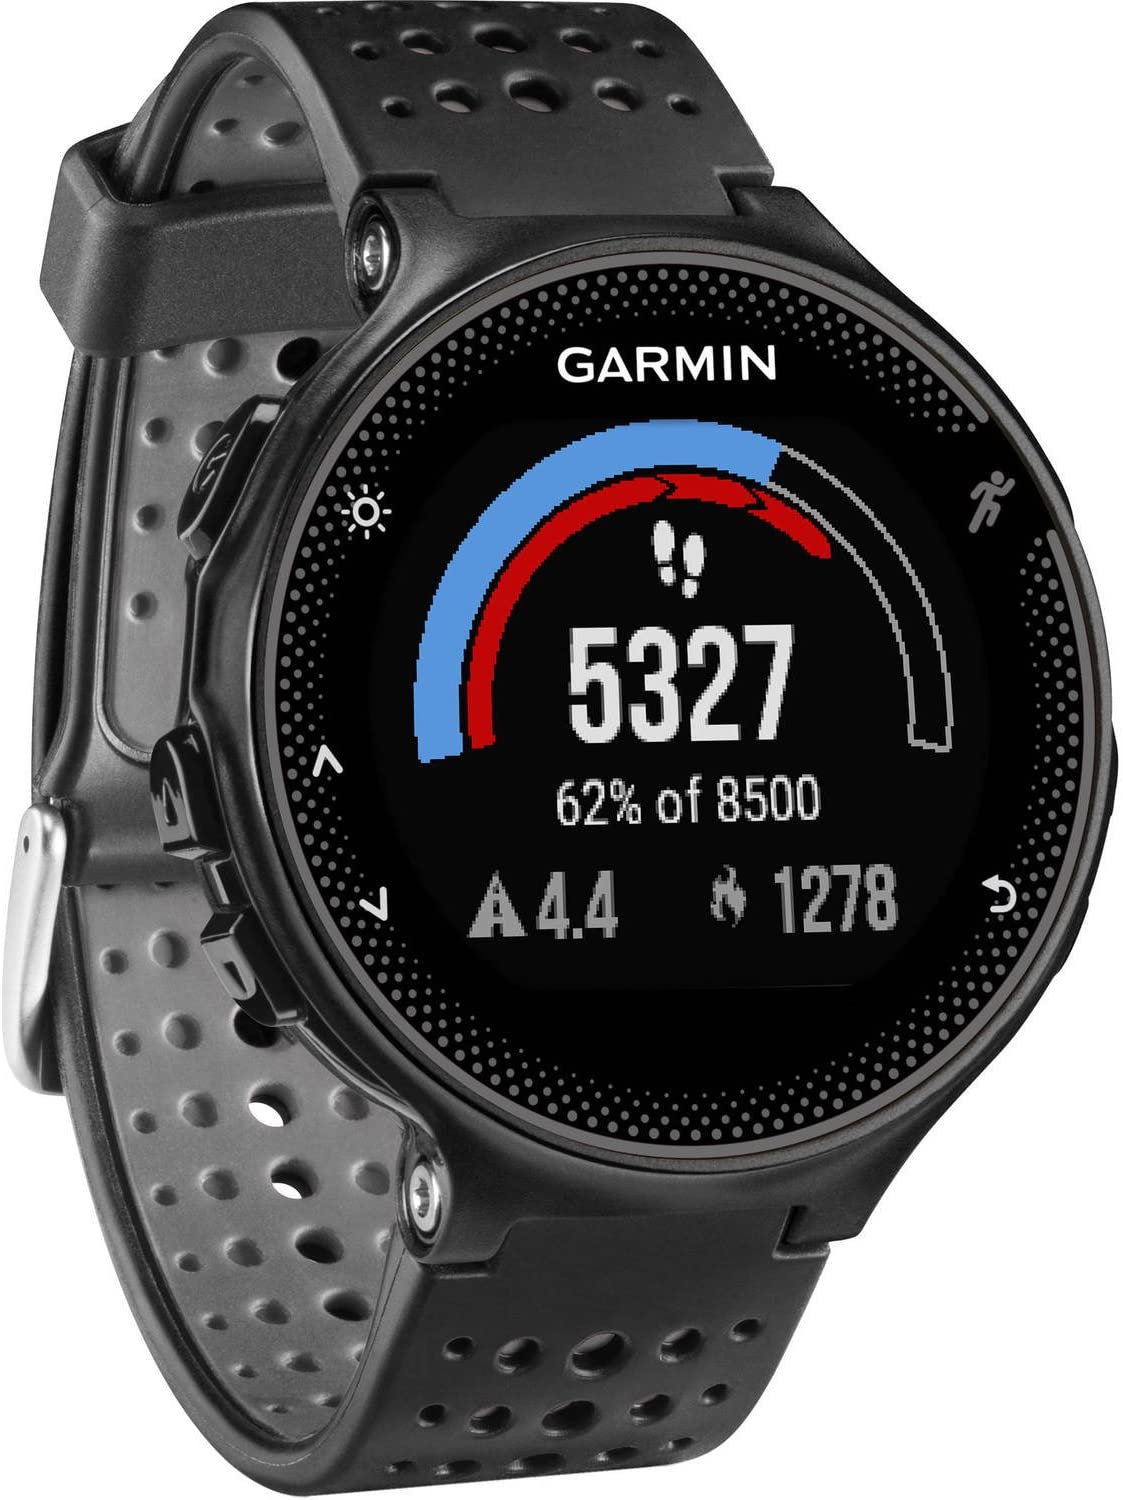 Garmin Forerunner 935 Running GPS Unit Black